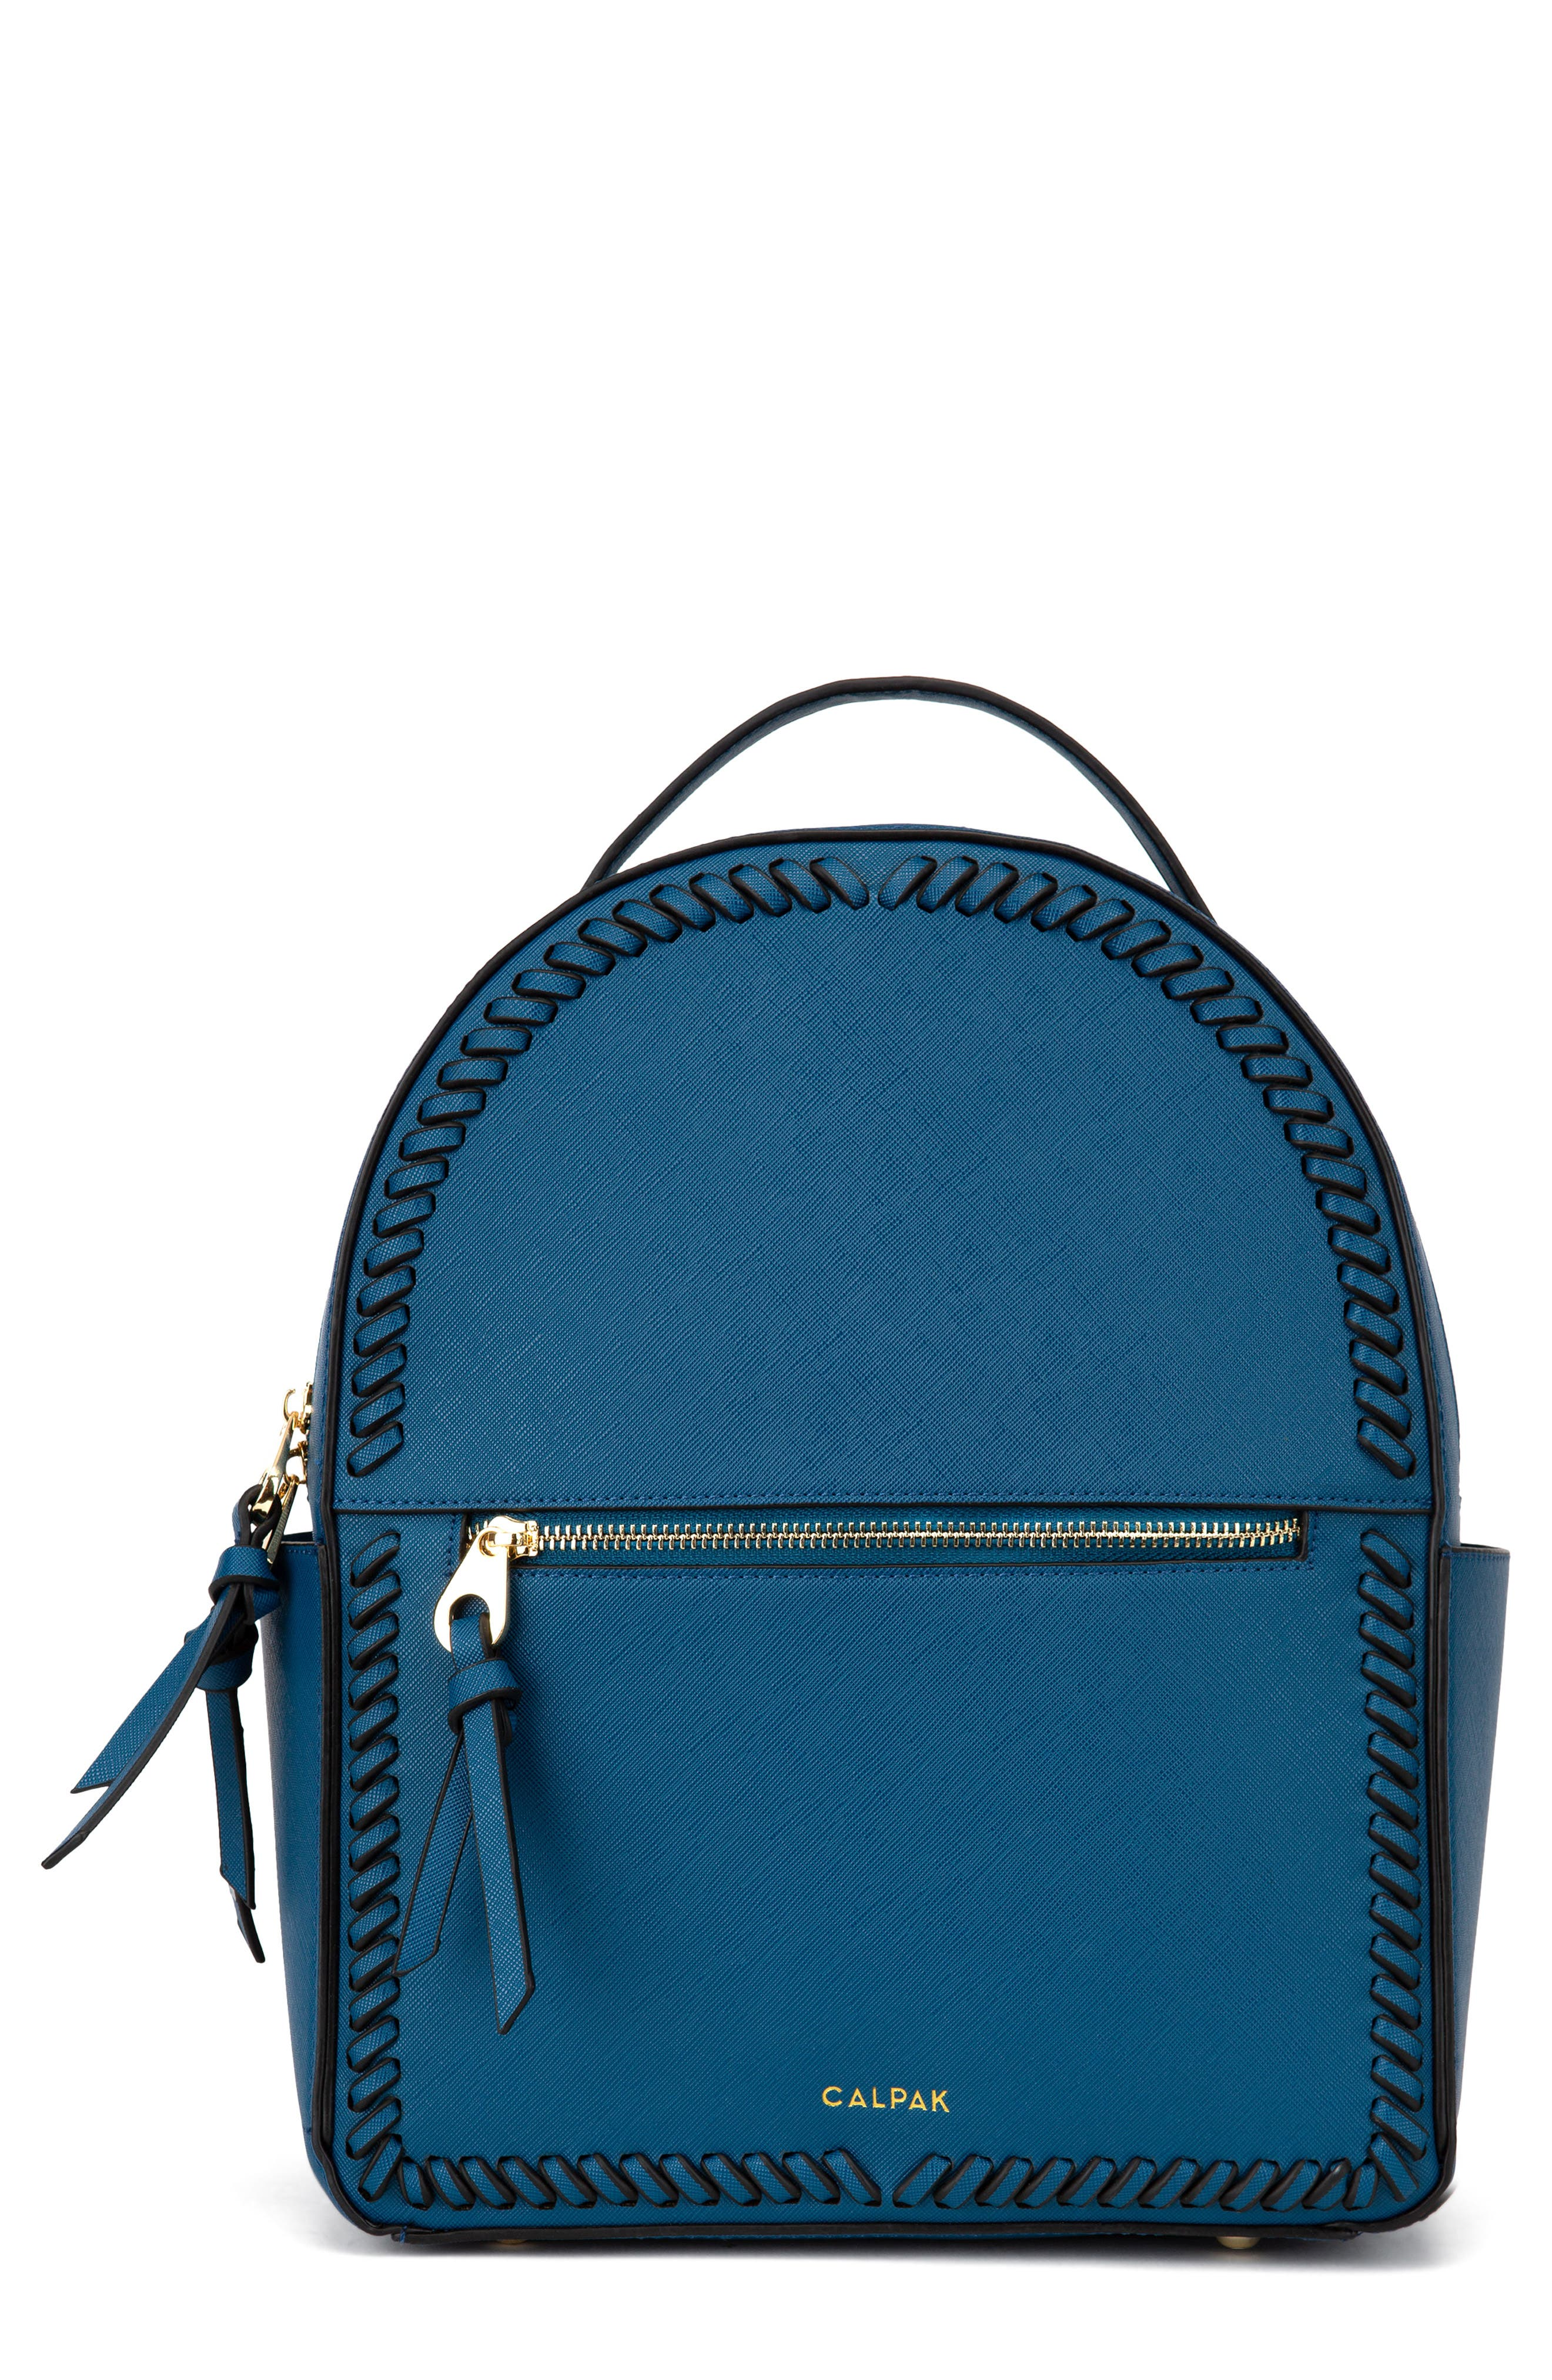 CALPAK Kaya Faux Leather Round Backpack - Blue in Deep Blue